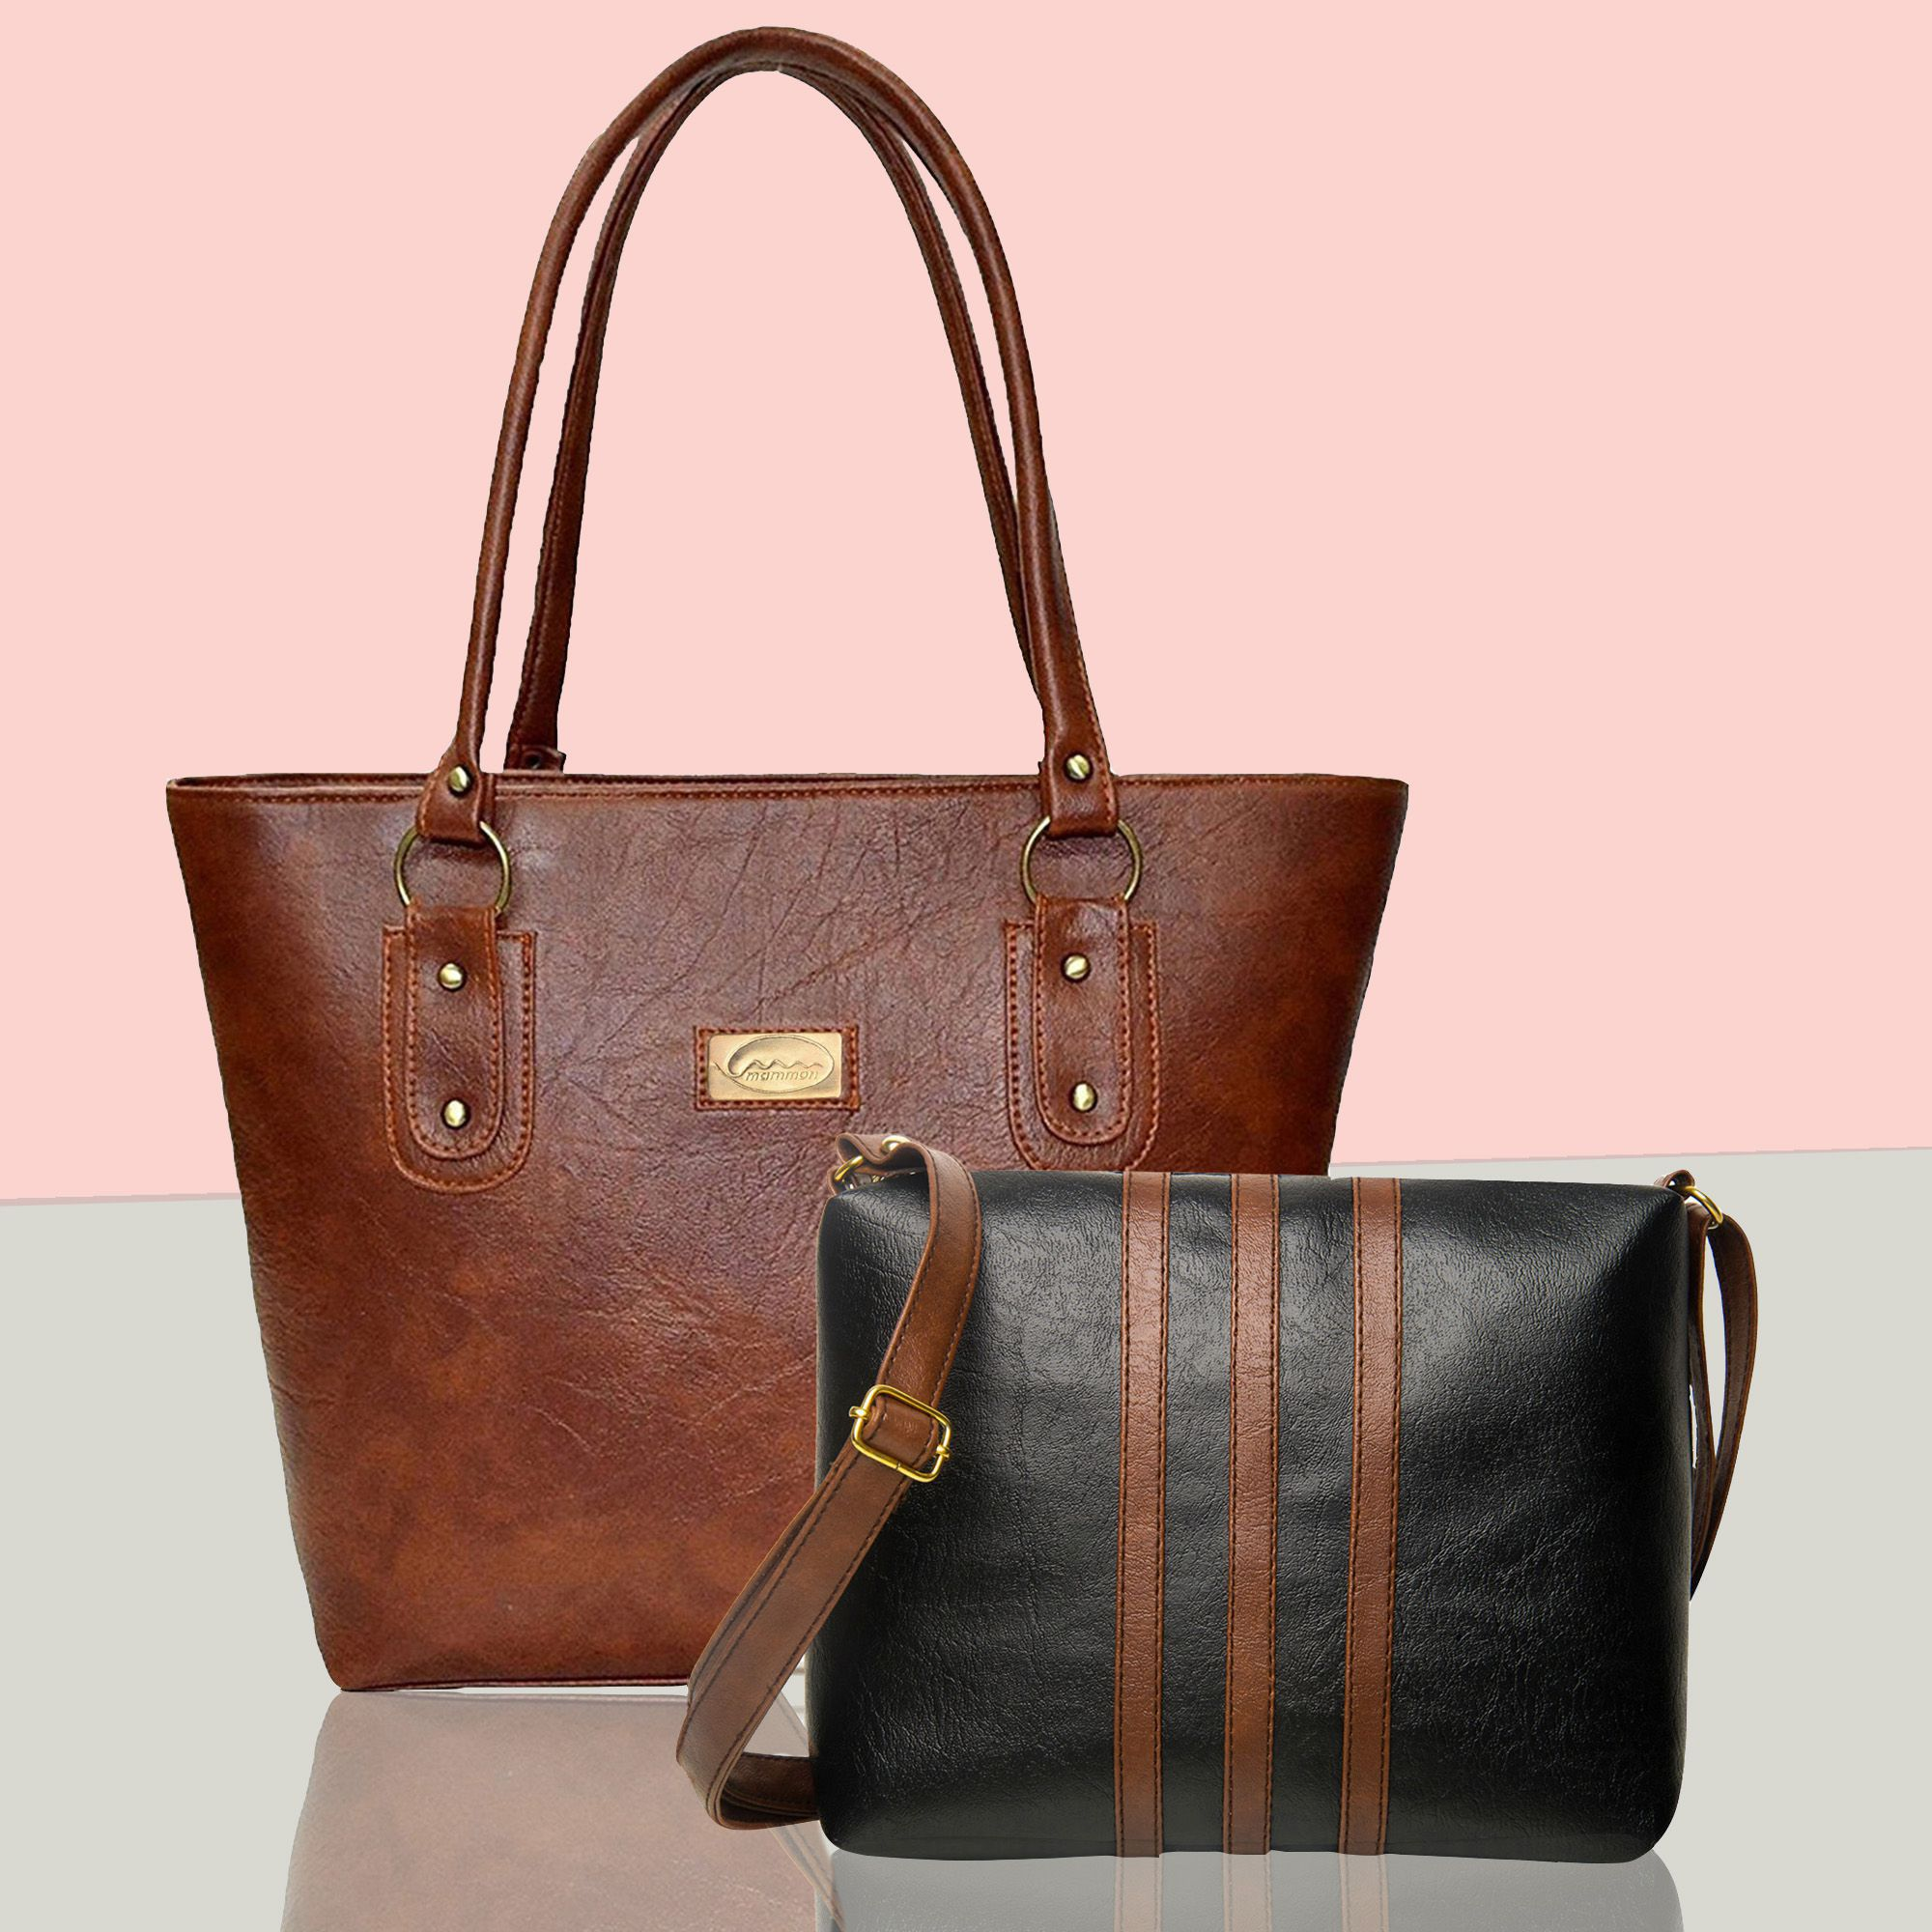 ea812d6e1f8ee Best Buy Combo Multi Faux Leather Shoulder Tote Bag by Mammon - Buy Best  Buy Combo Multi Faux Leather Shoulder Tote Bag by Mammon Online at Best  Prices in ...